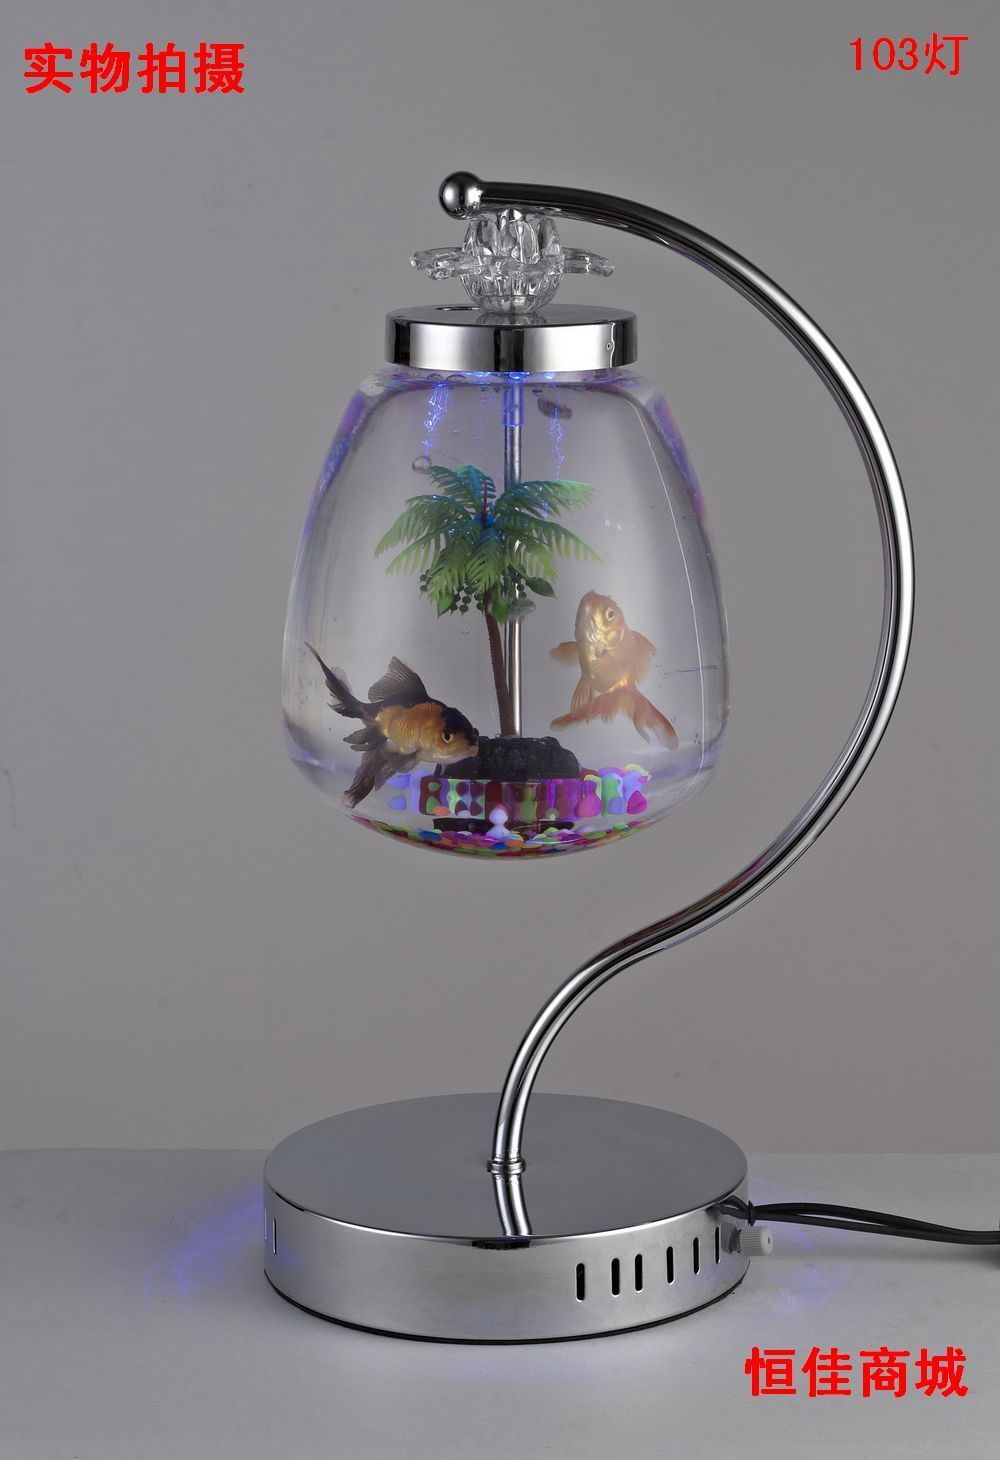 Goldfish bowl & Table-lamp-fish-tank-small-desktop-fish-tank-goldfish-bowl ...